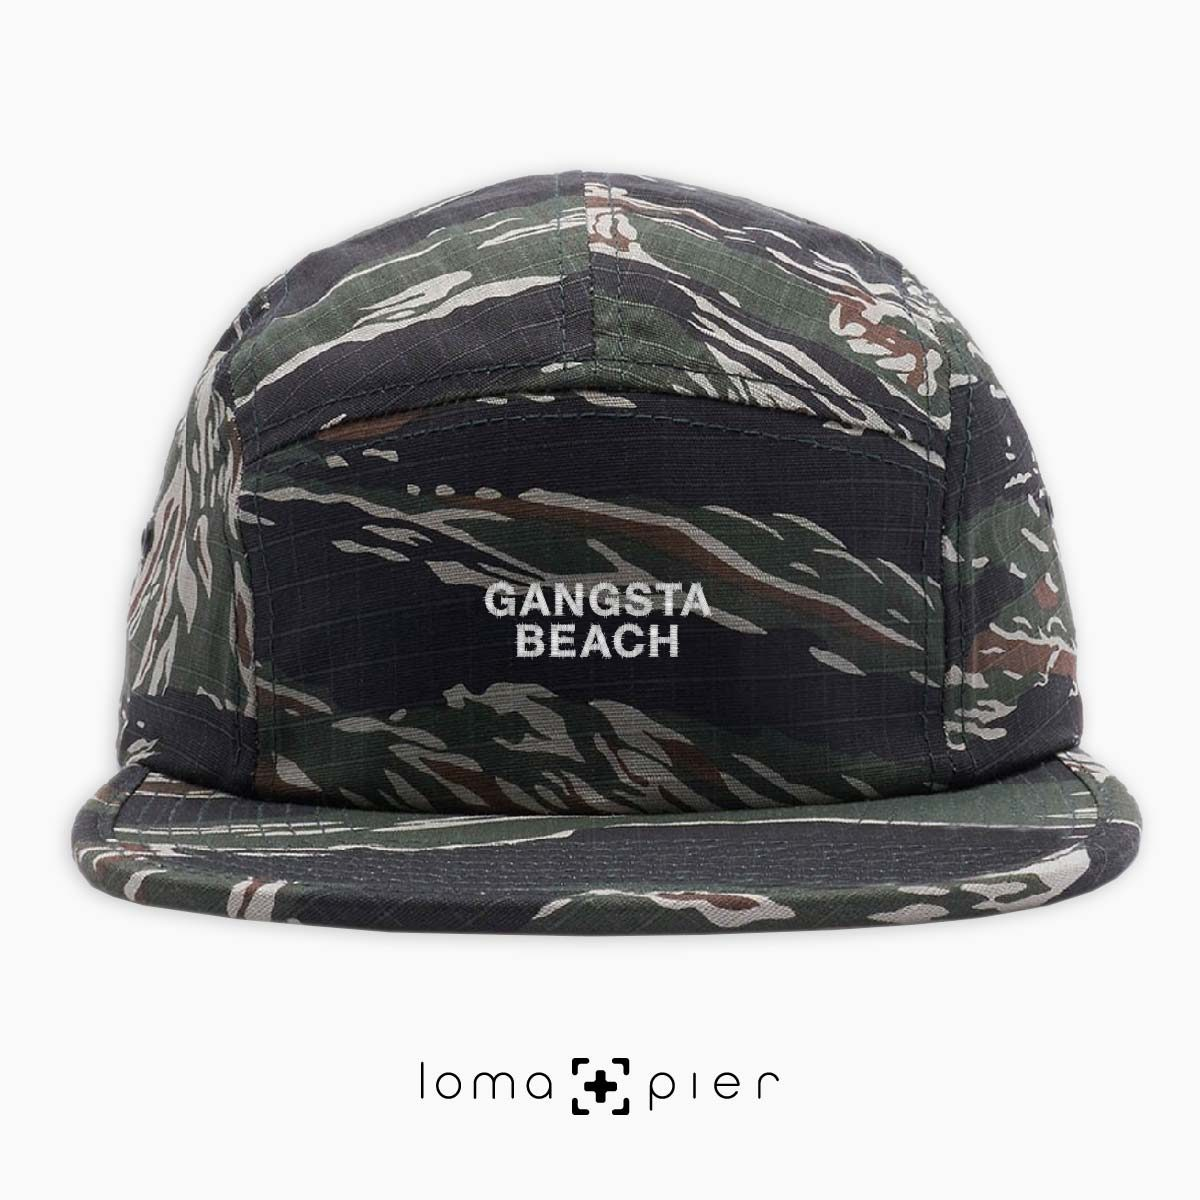 GANGSTA BEACH embroidered on a tiger camo cotton 5-panel hat by loma+pier hat store